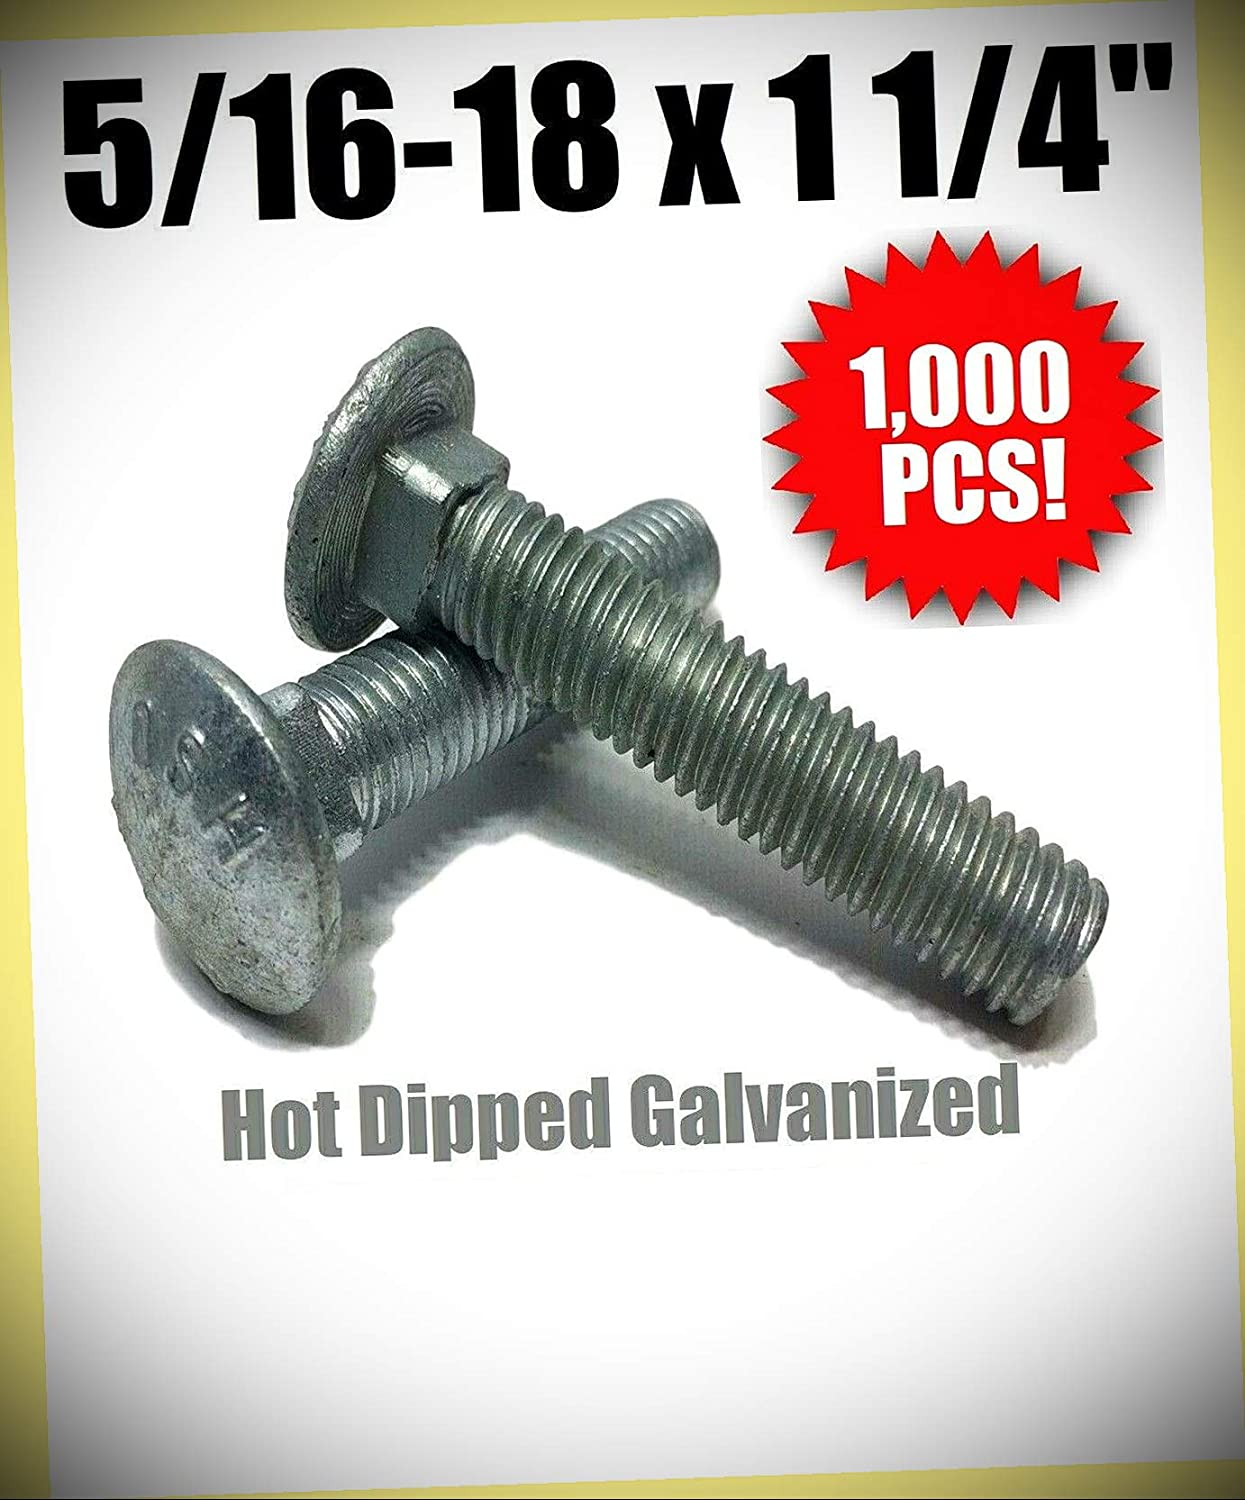 pcs 5//16-18 x 1 1//4 Carriage Bolt Hot Dipped Galvanized A307 Set #RD-4181FST Warranity by Pr-Mch Package of 1000